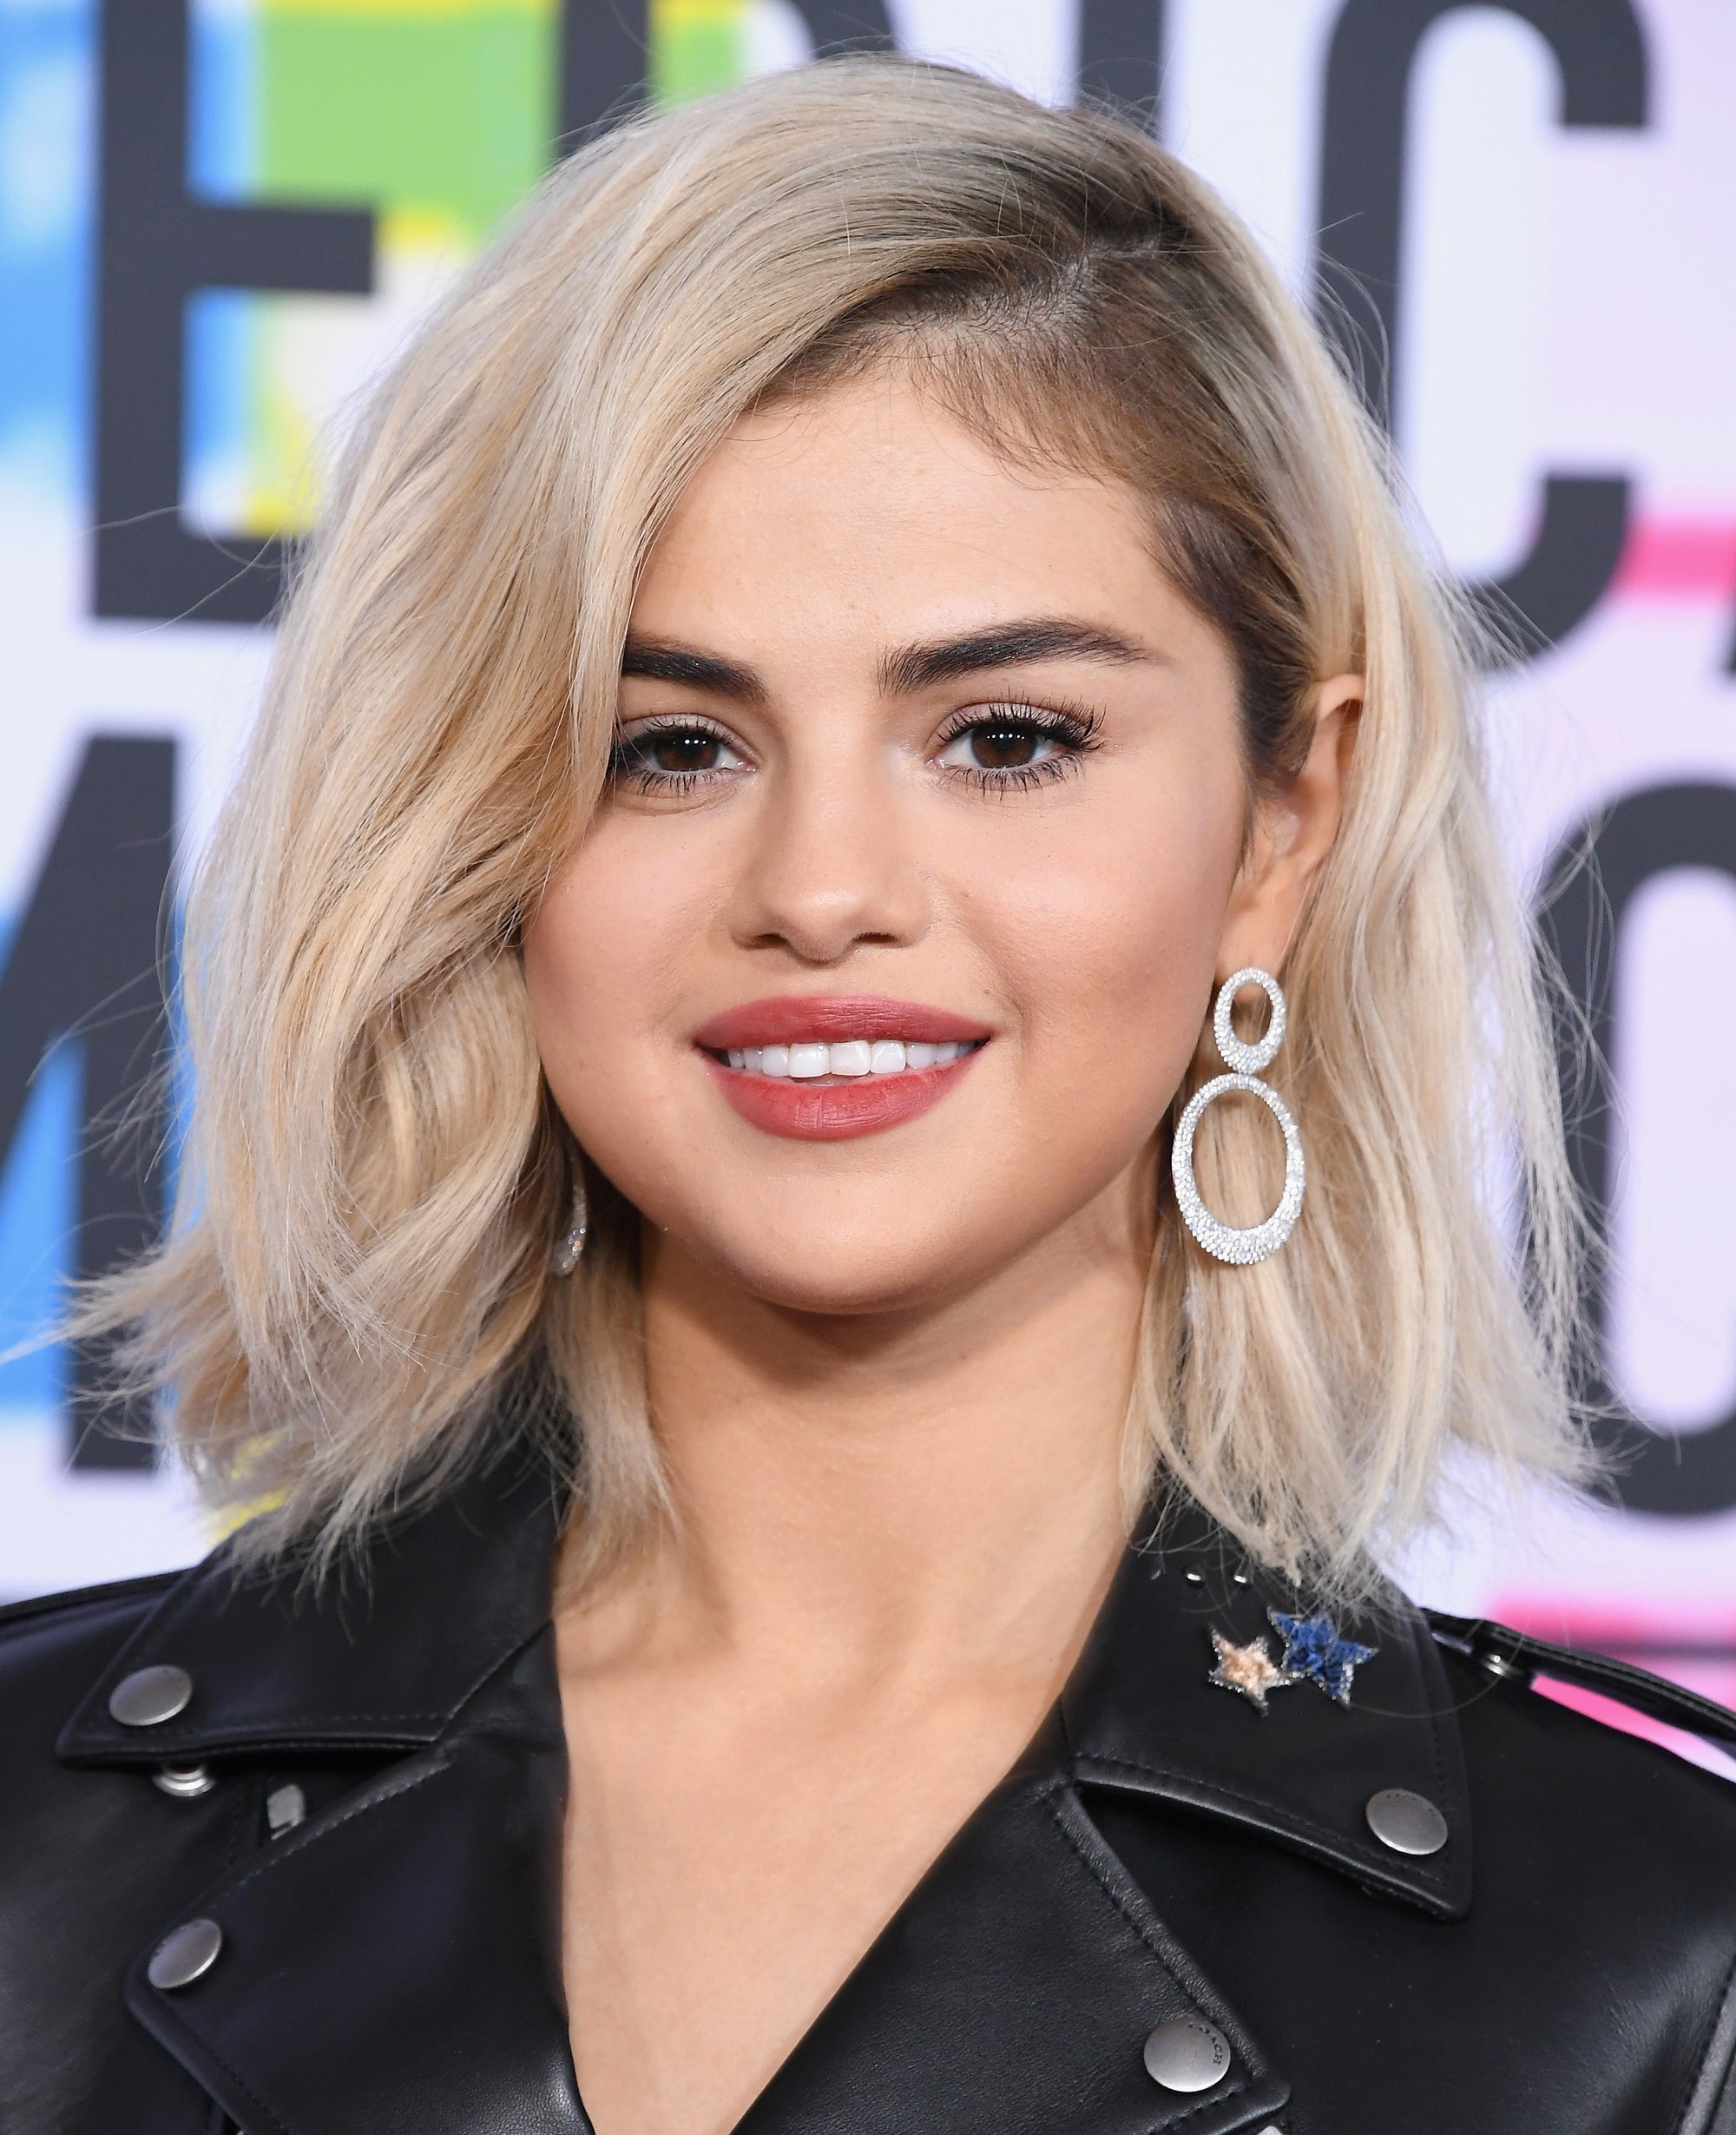 Selena Gomez blonde messy bob hairstyle 2019